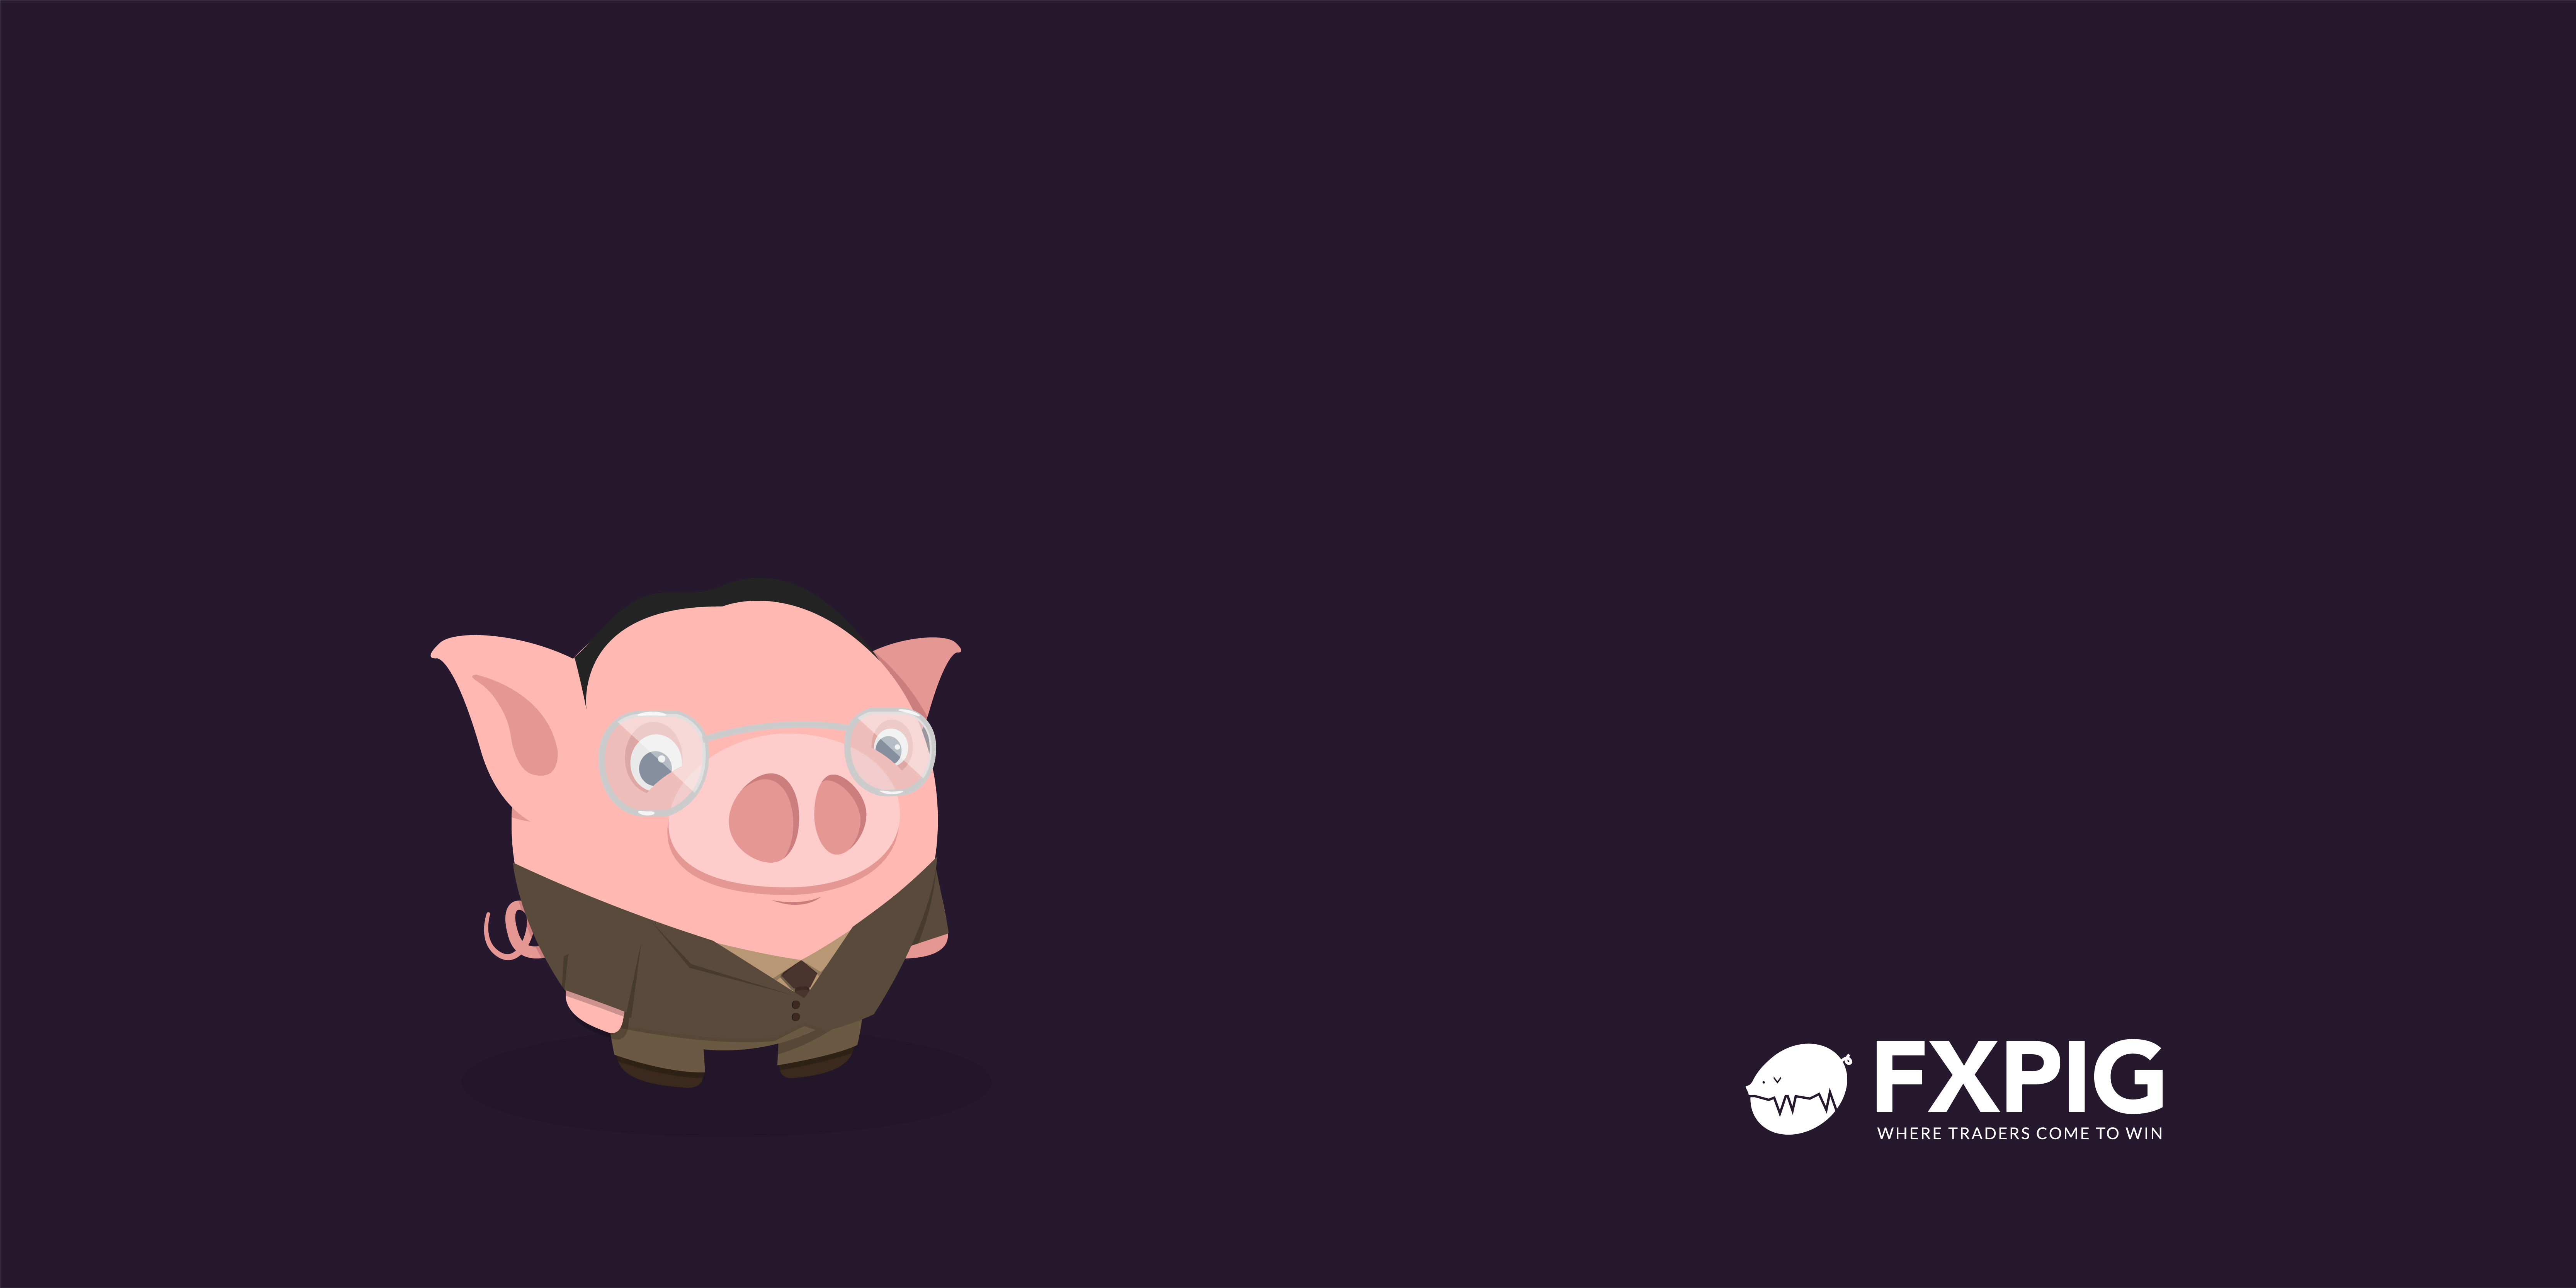 Forex-trading-wisdom_process-of-investing_FXPIG